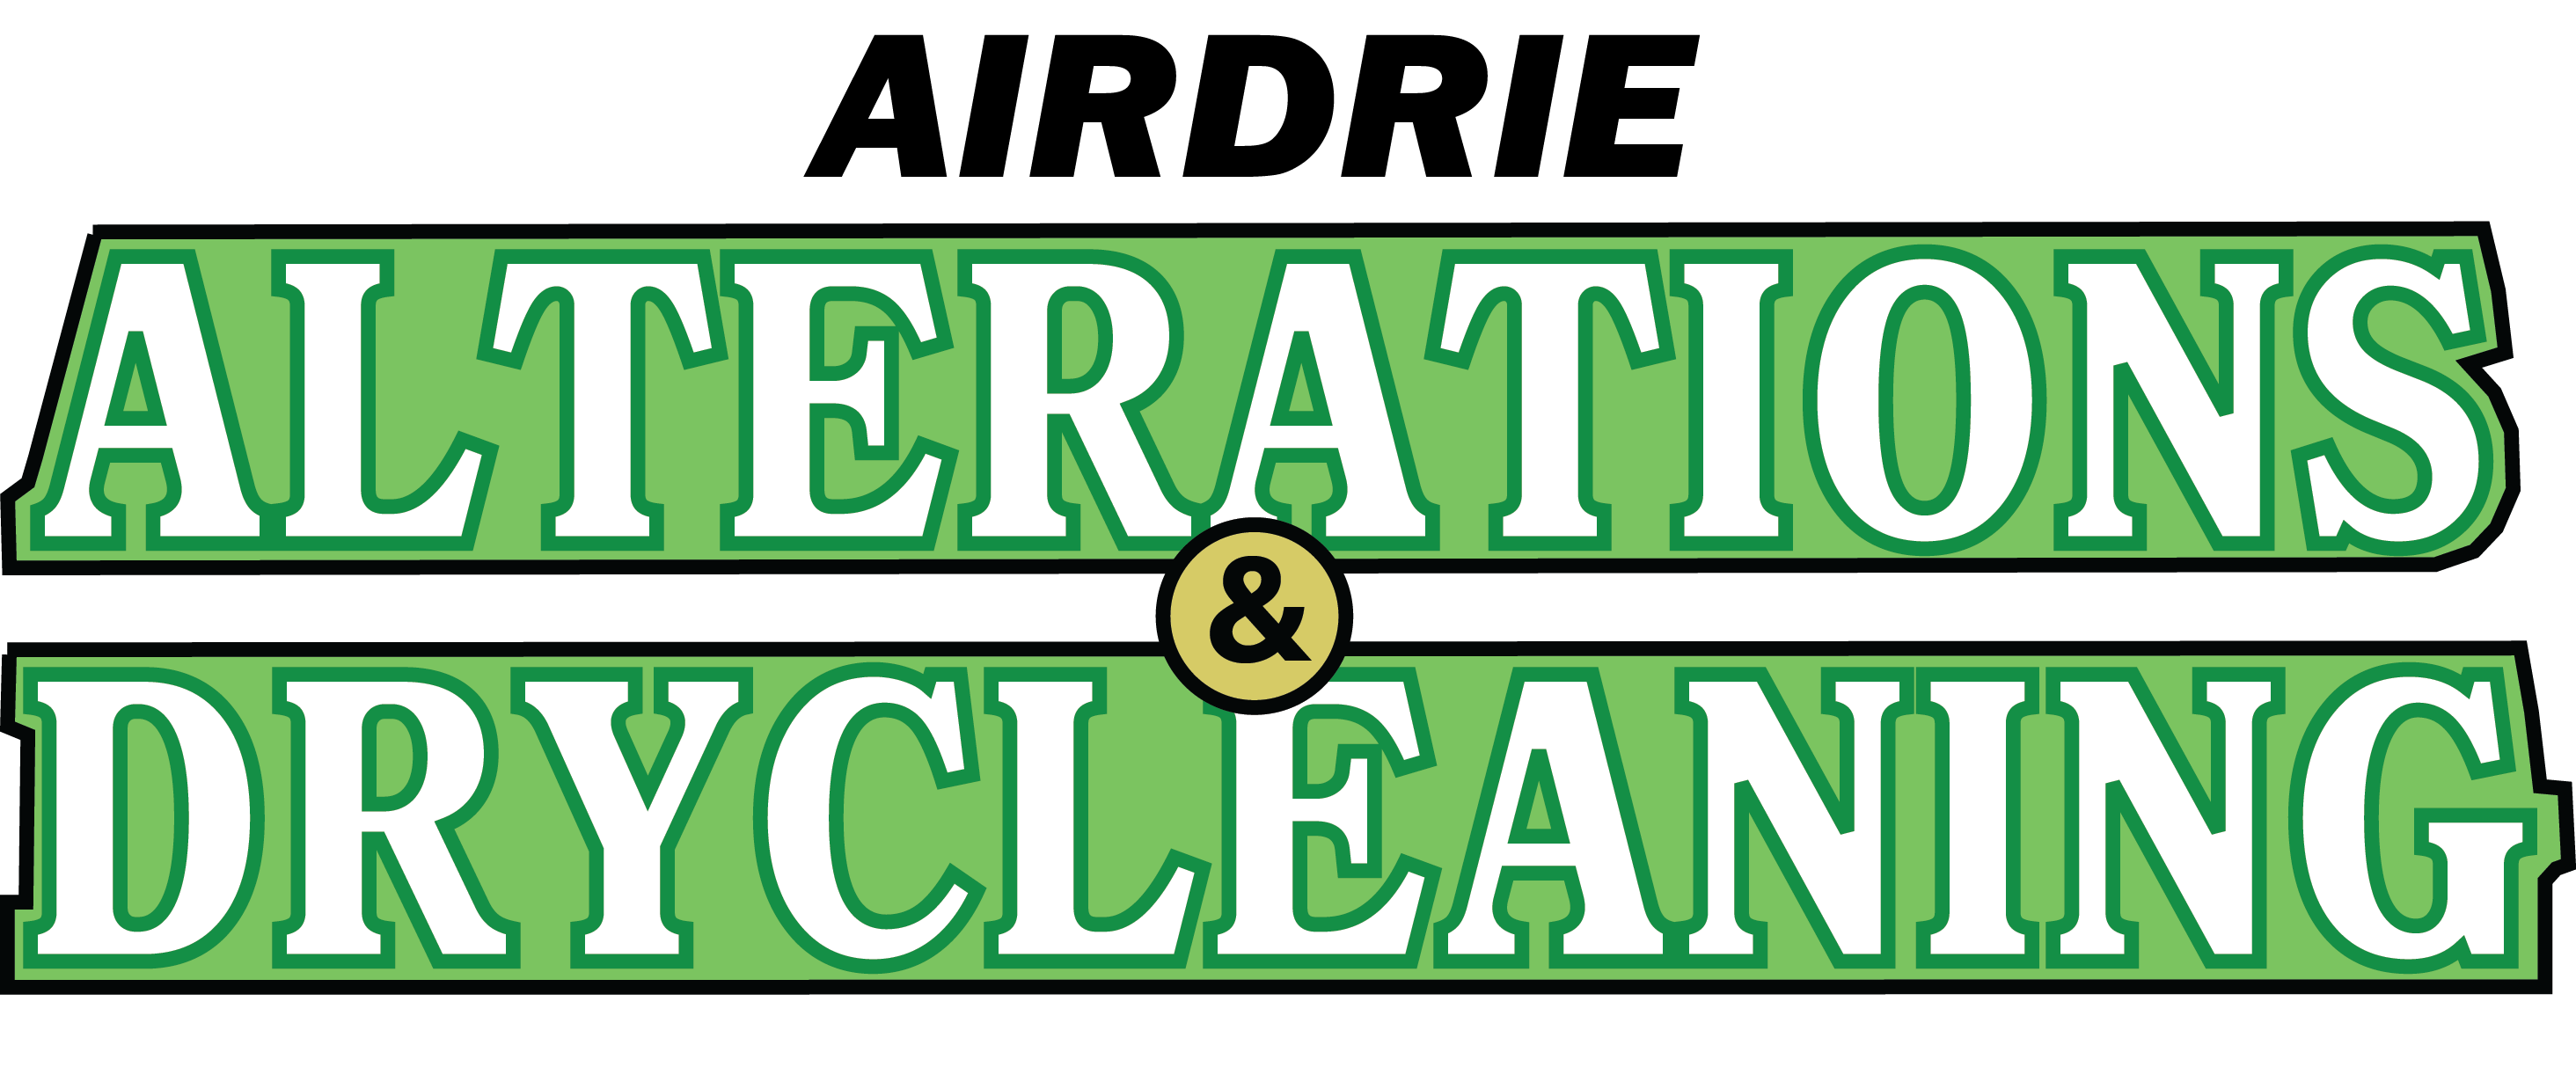 Airdrie Alterations and Drycleaning